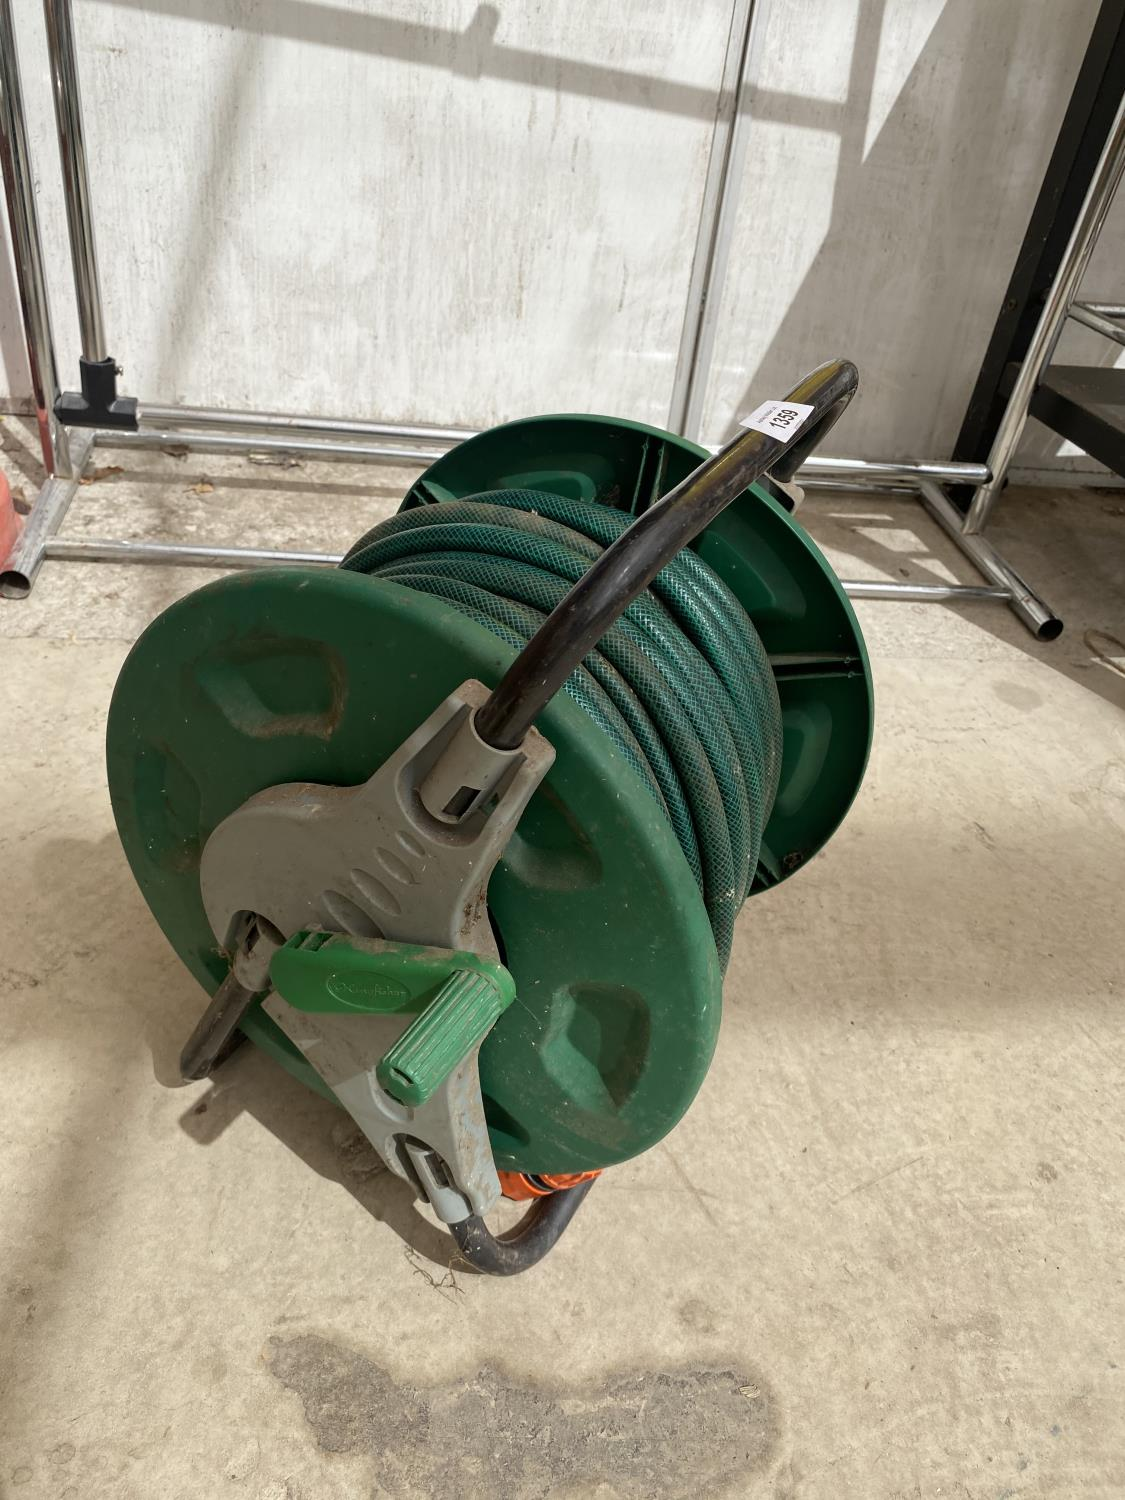 TWO GARDEN RAKES AND A HOSE REEL - Image 3 of 3